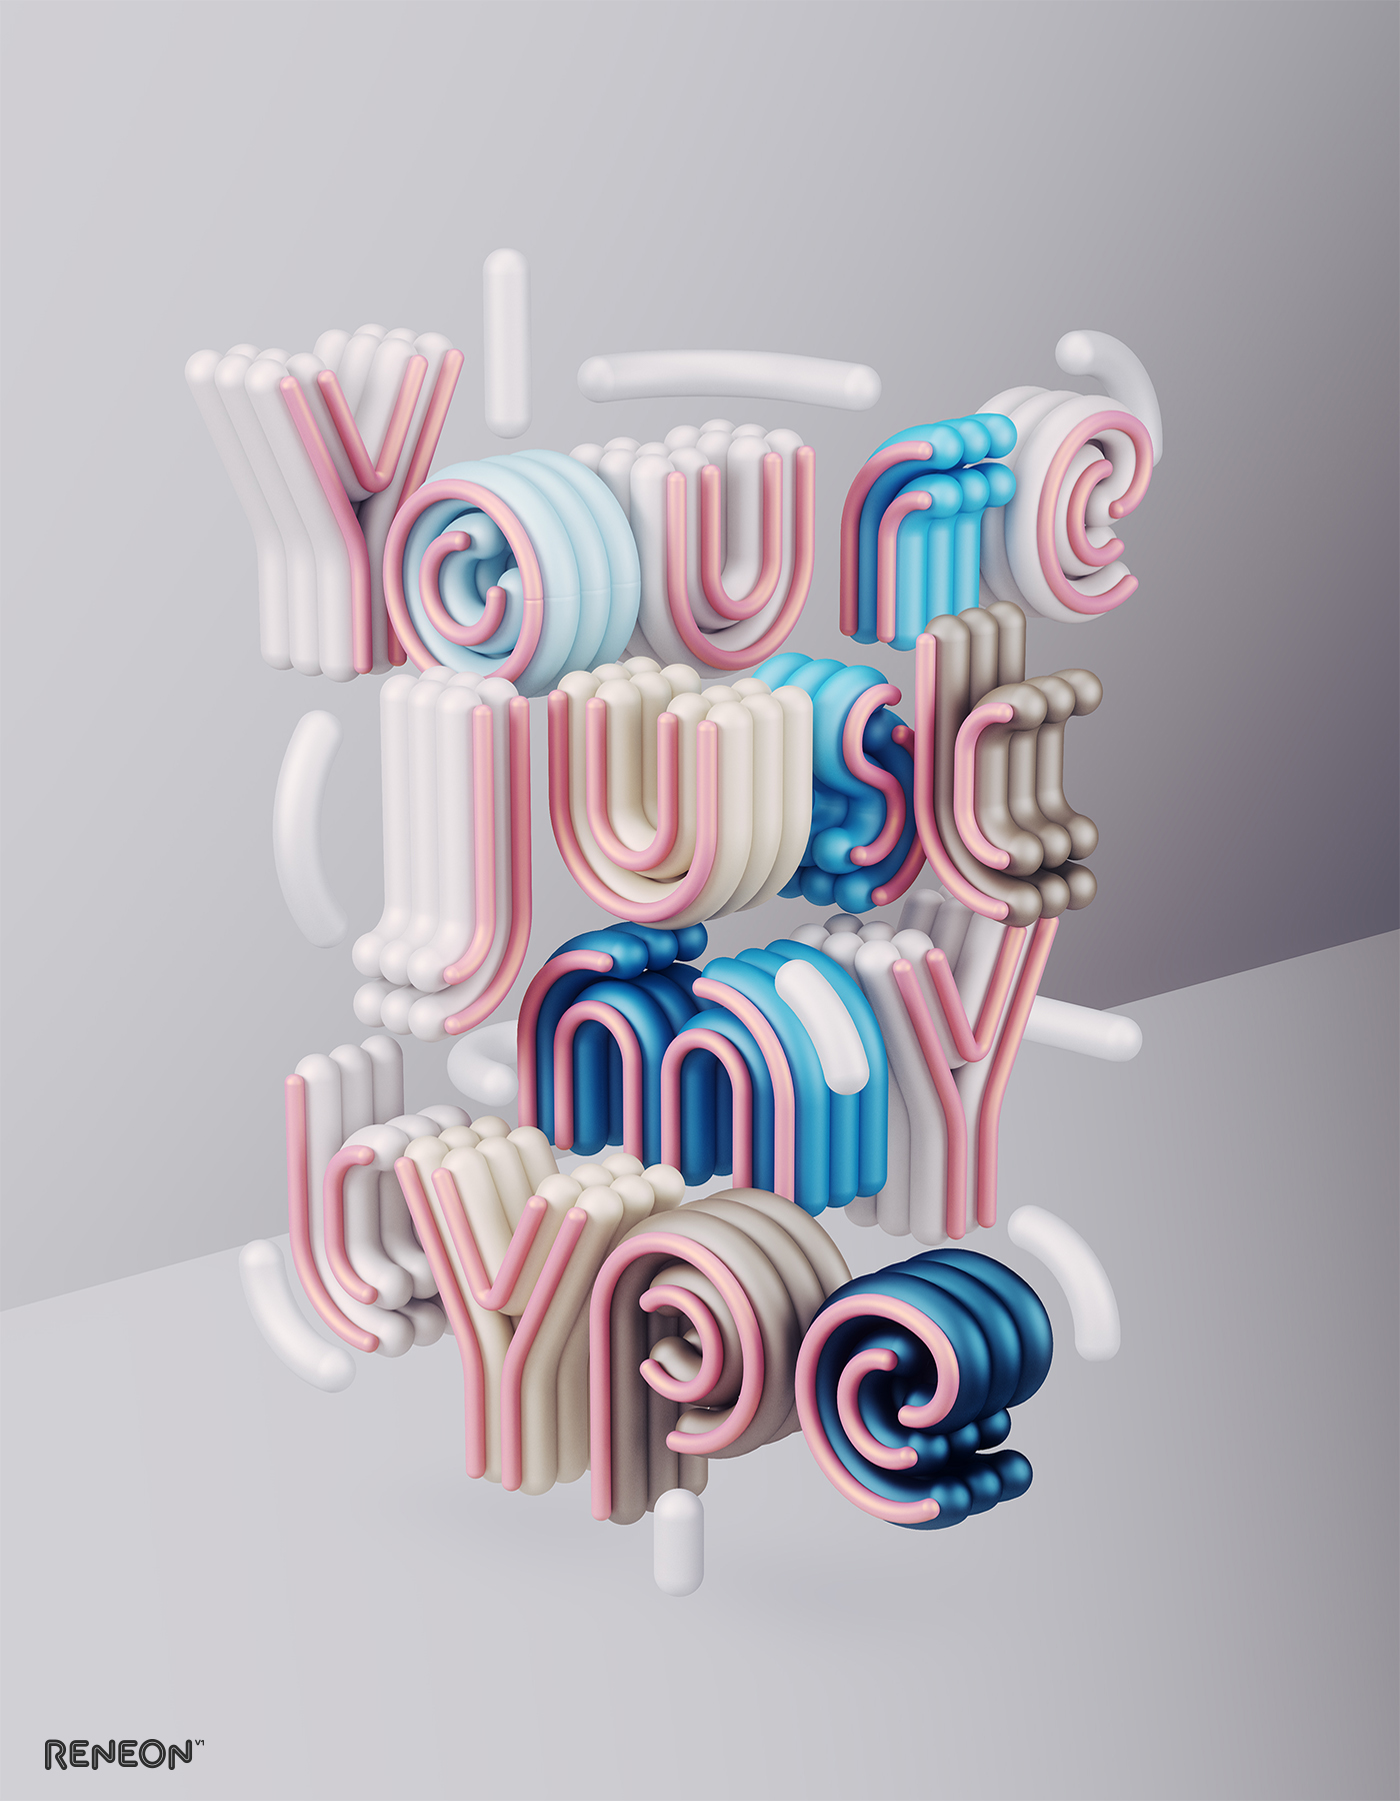 3d typography design reneon by omanaquil